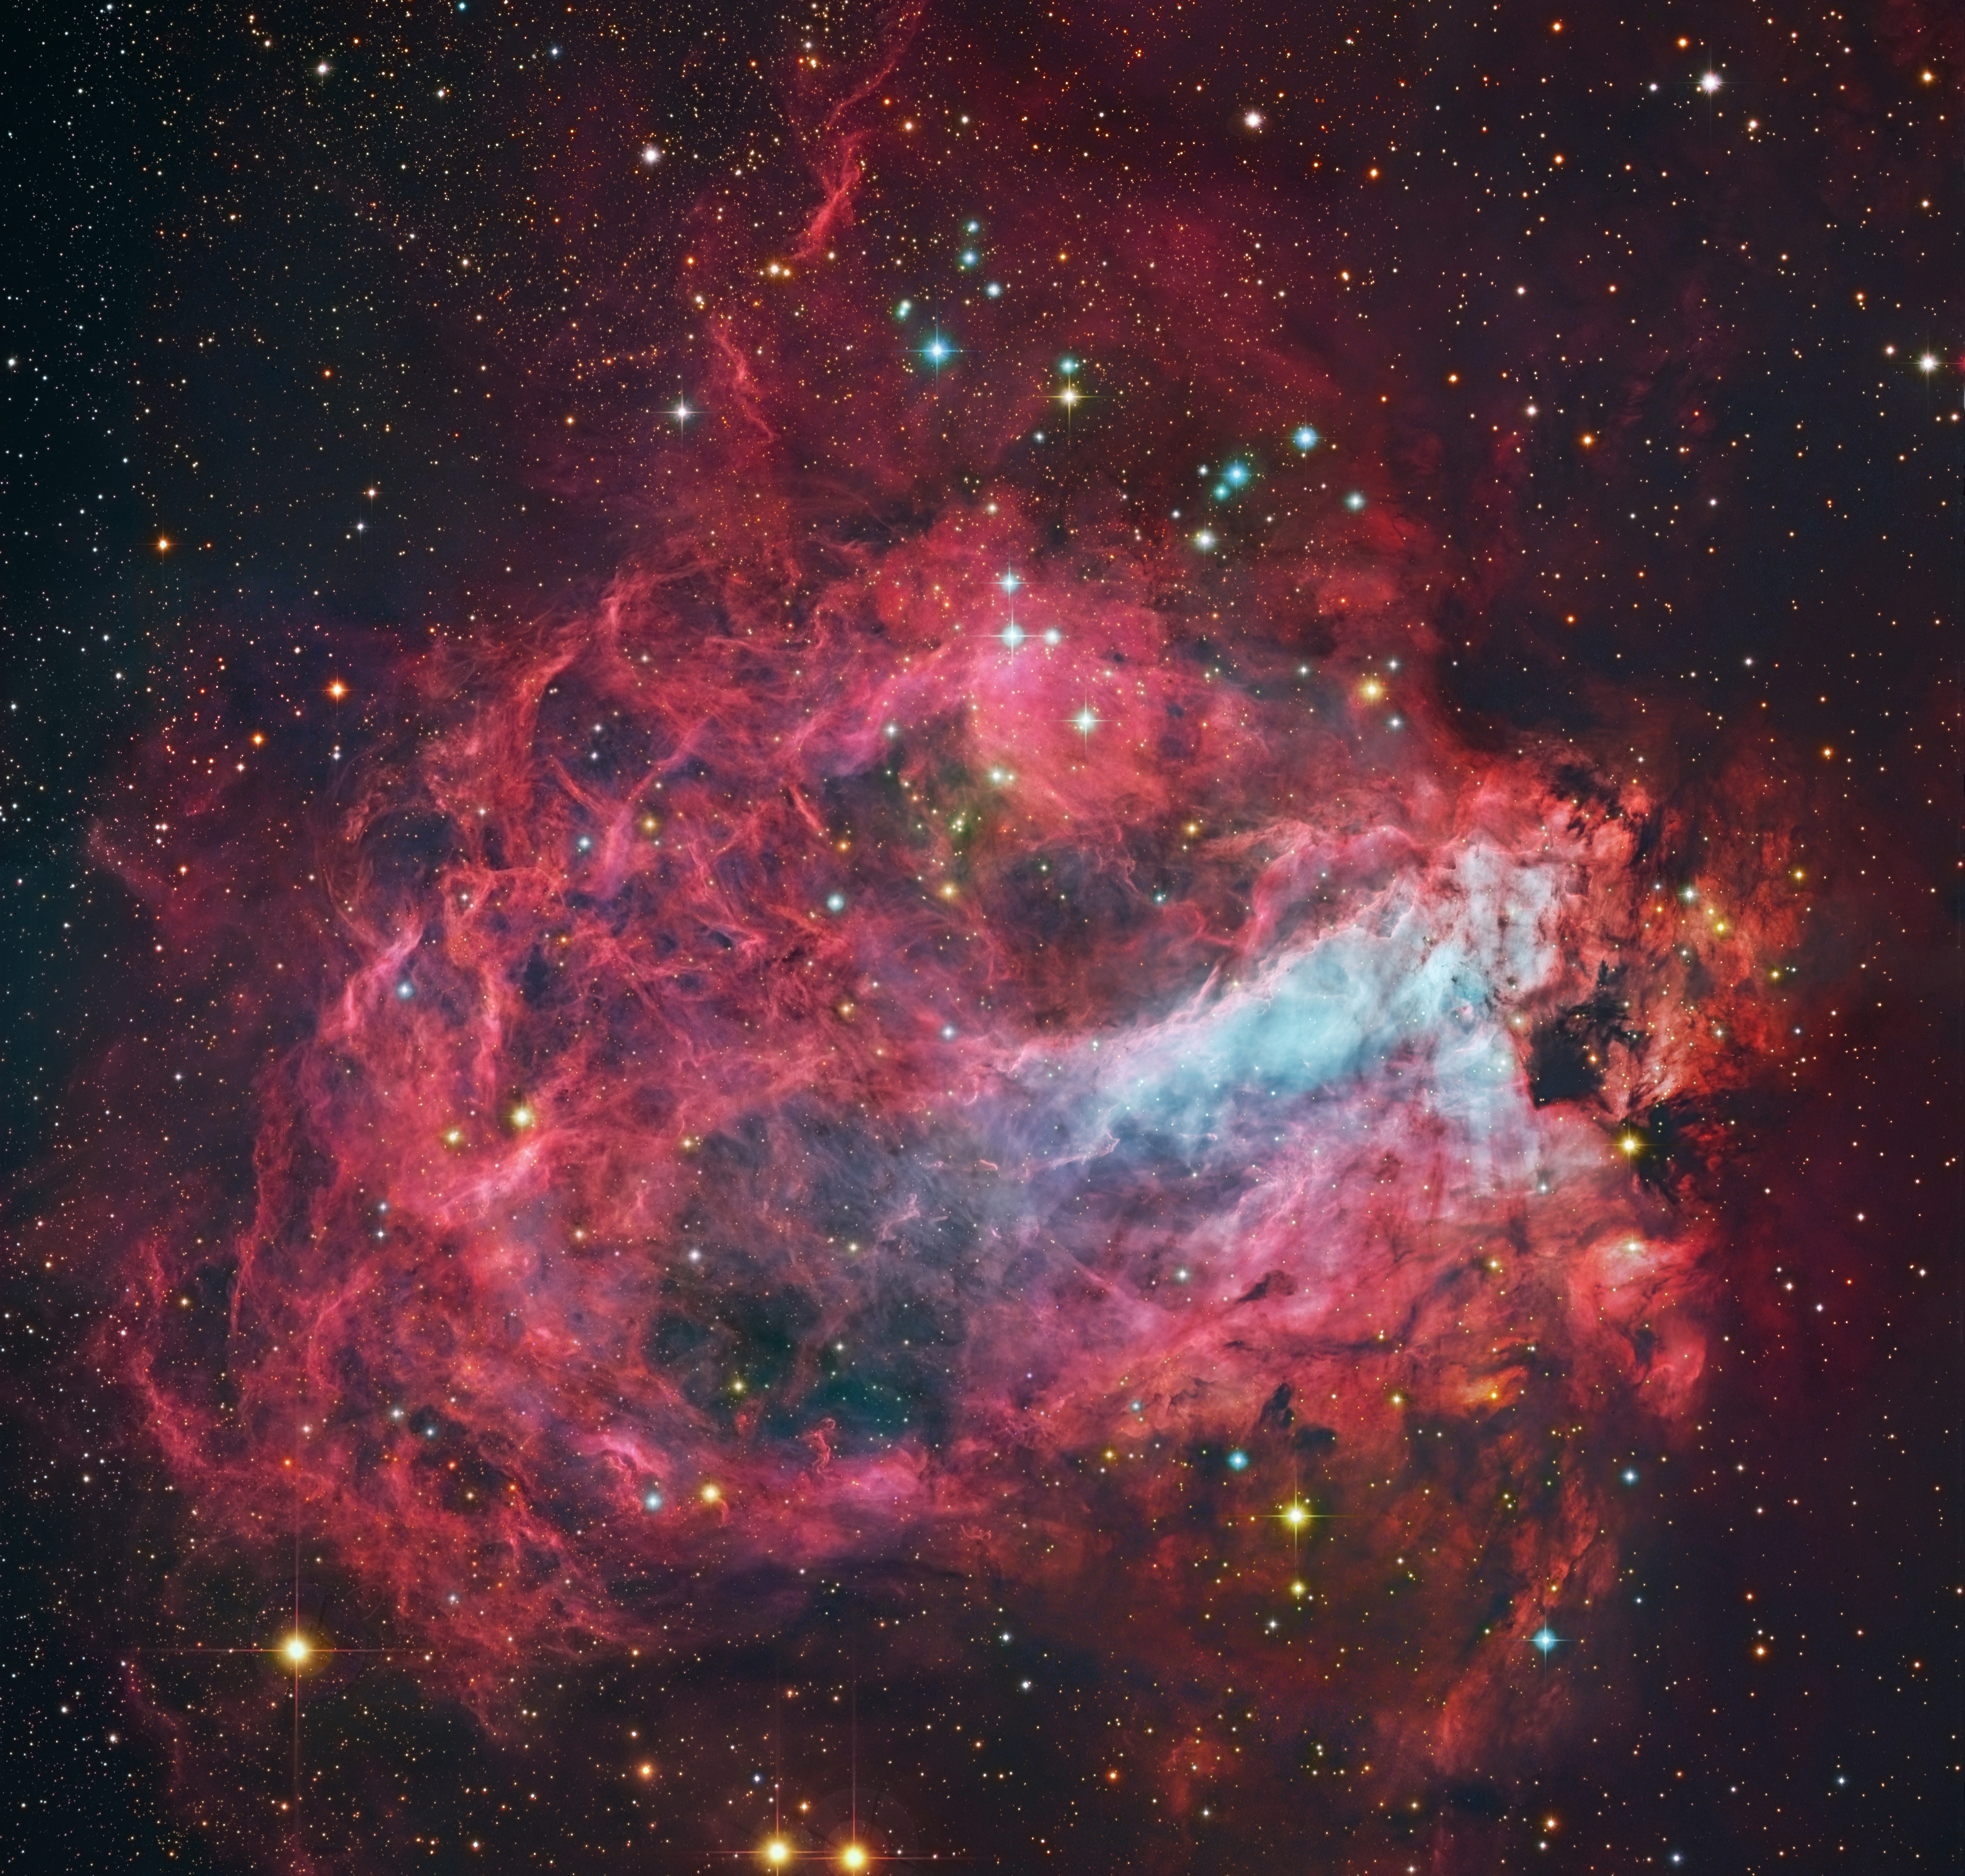 The Omega Nebula M lightyears away in the constellation